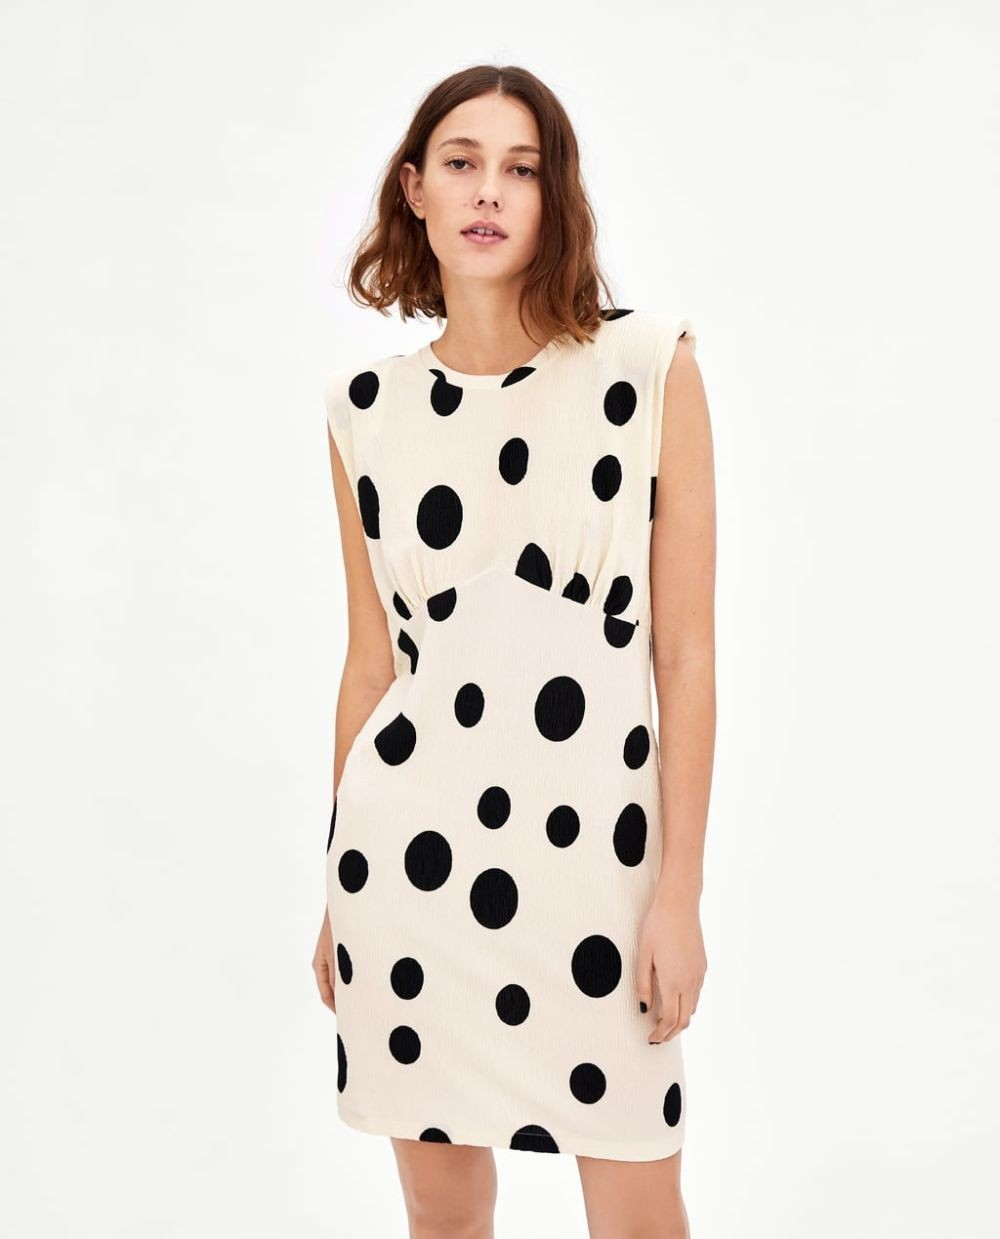 Dream Love Navy Blue Polka Dot Off-the-Shoulder Maxi Dress Polka dot dress fashion 2018